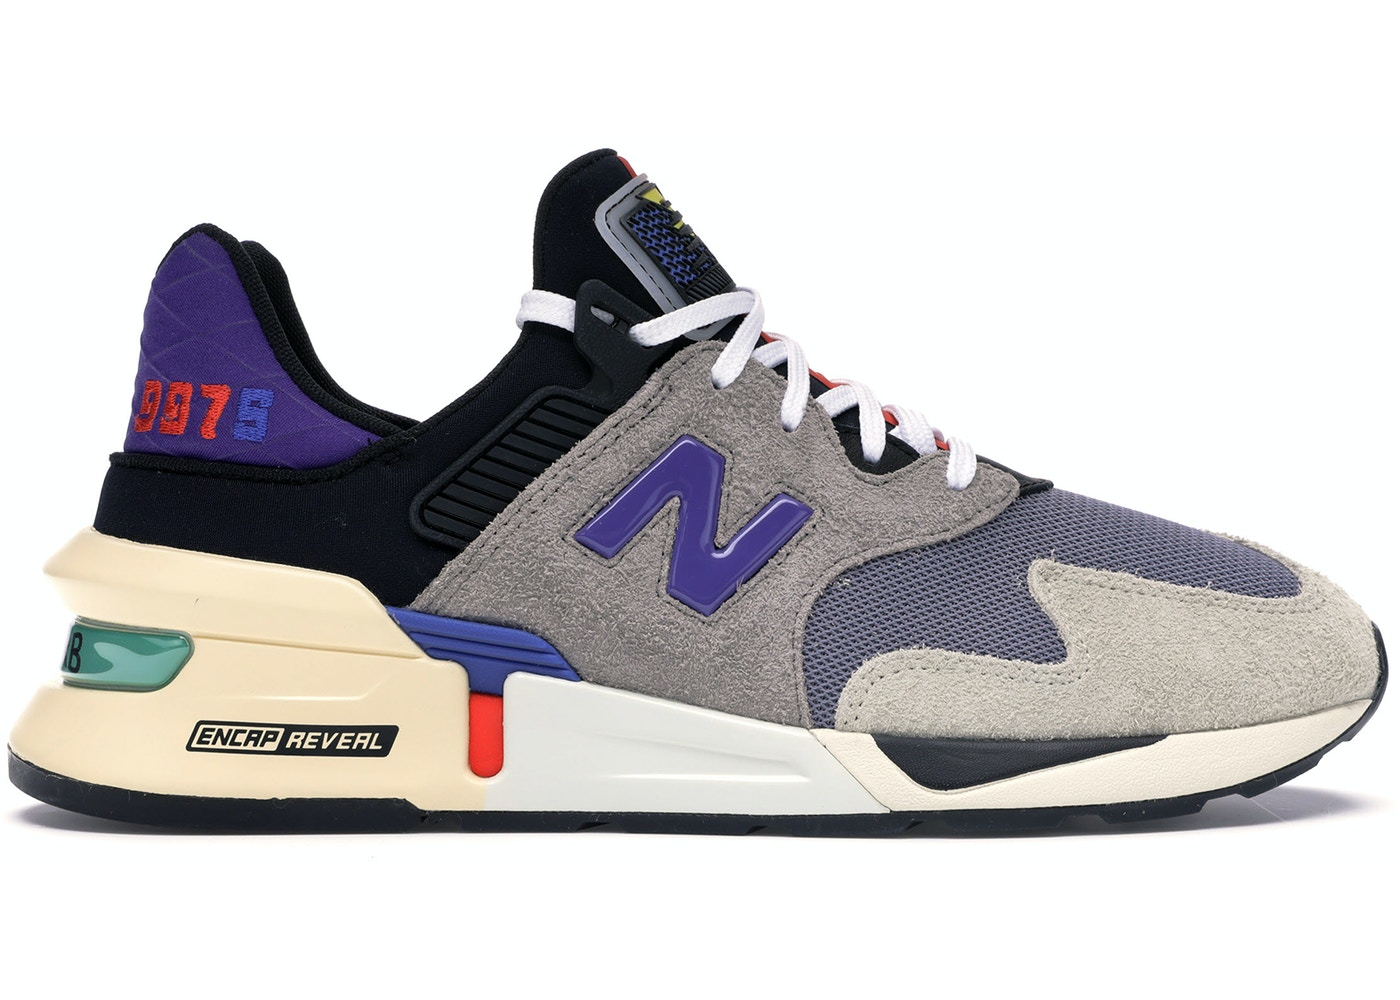 a790fd053d New Balance 997S Bodega - undefined